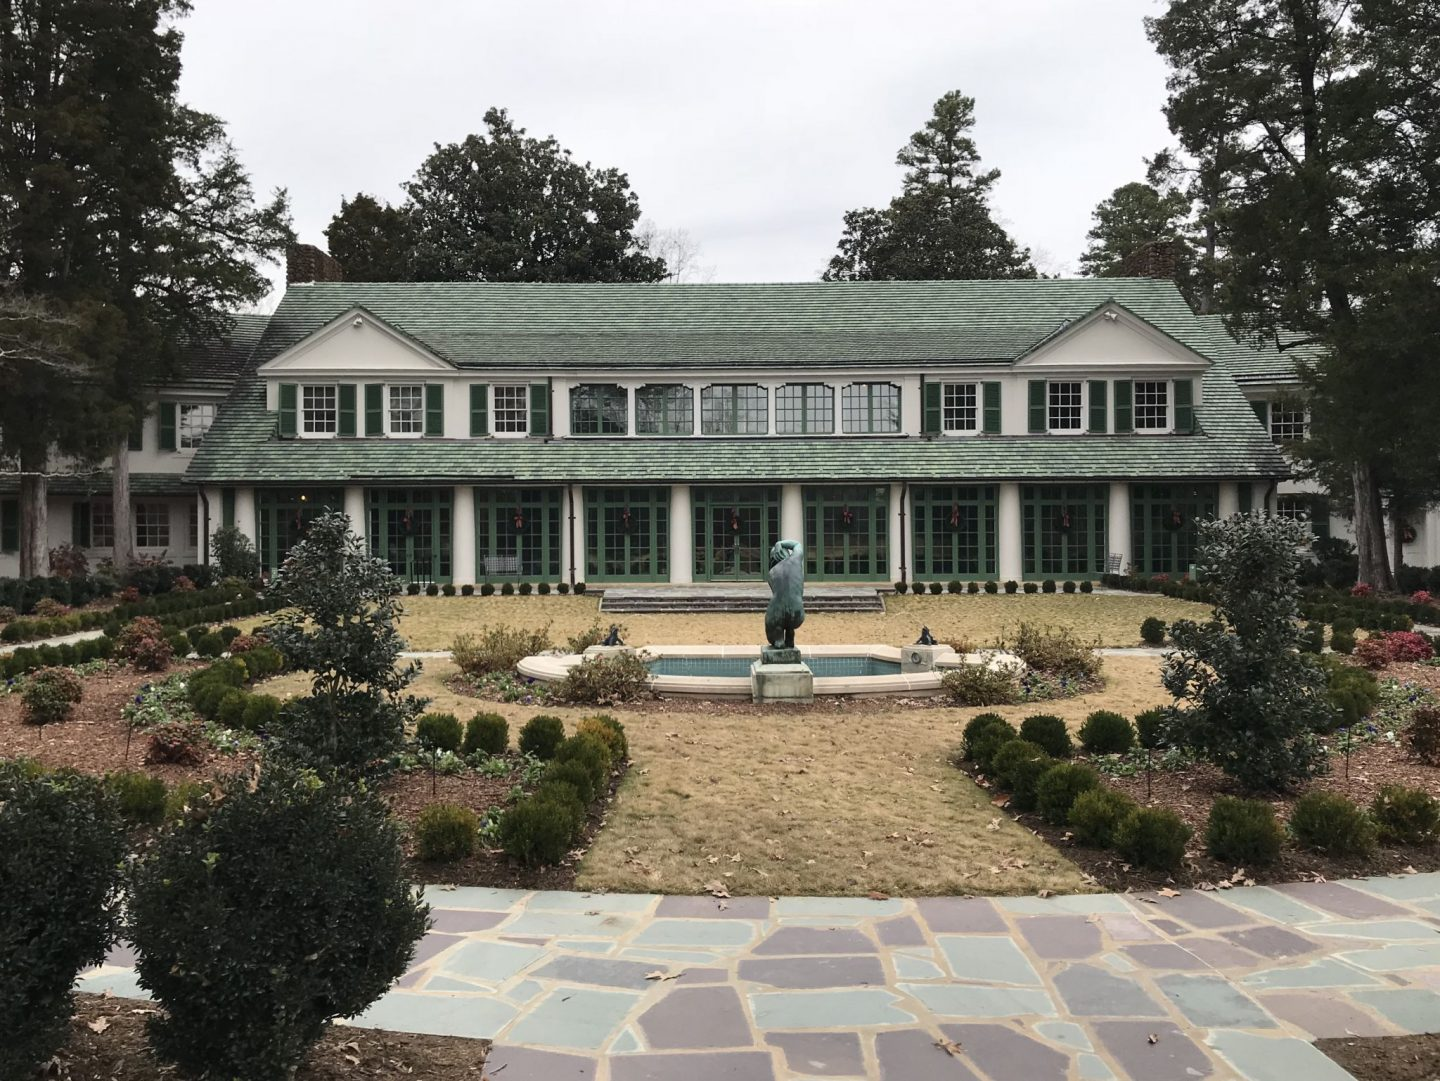 Reynolda House - Winston Salem - Lauren Schwaiger Travel Blog